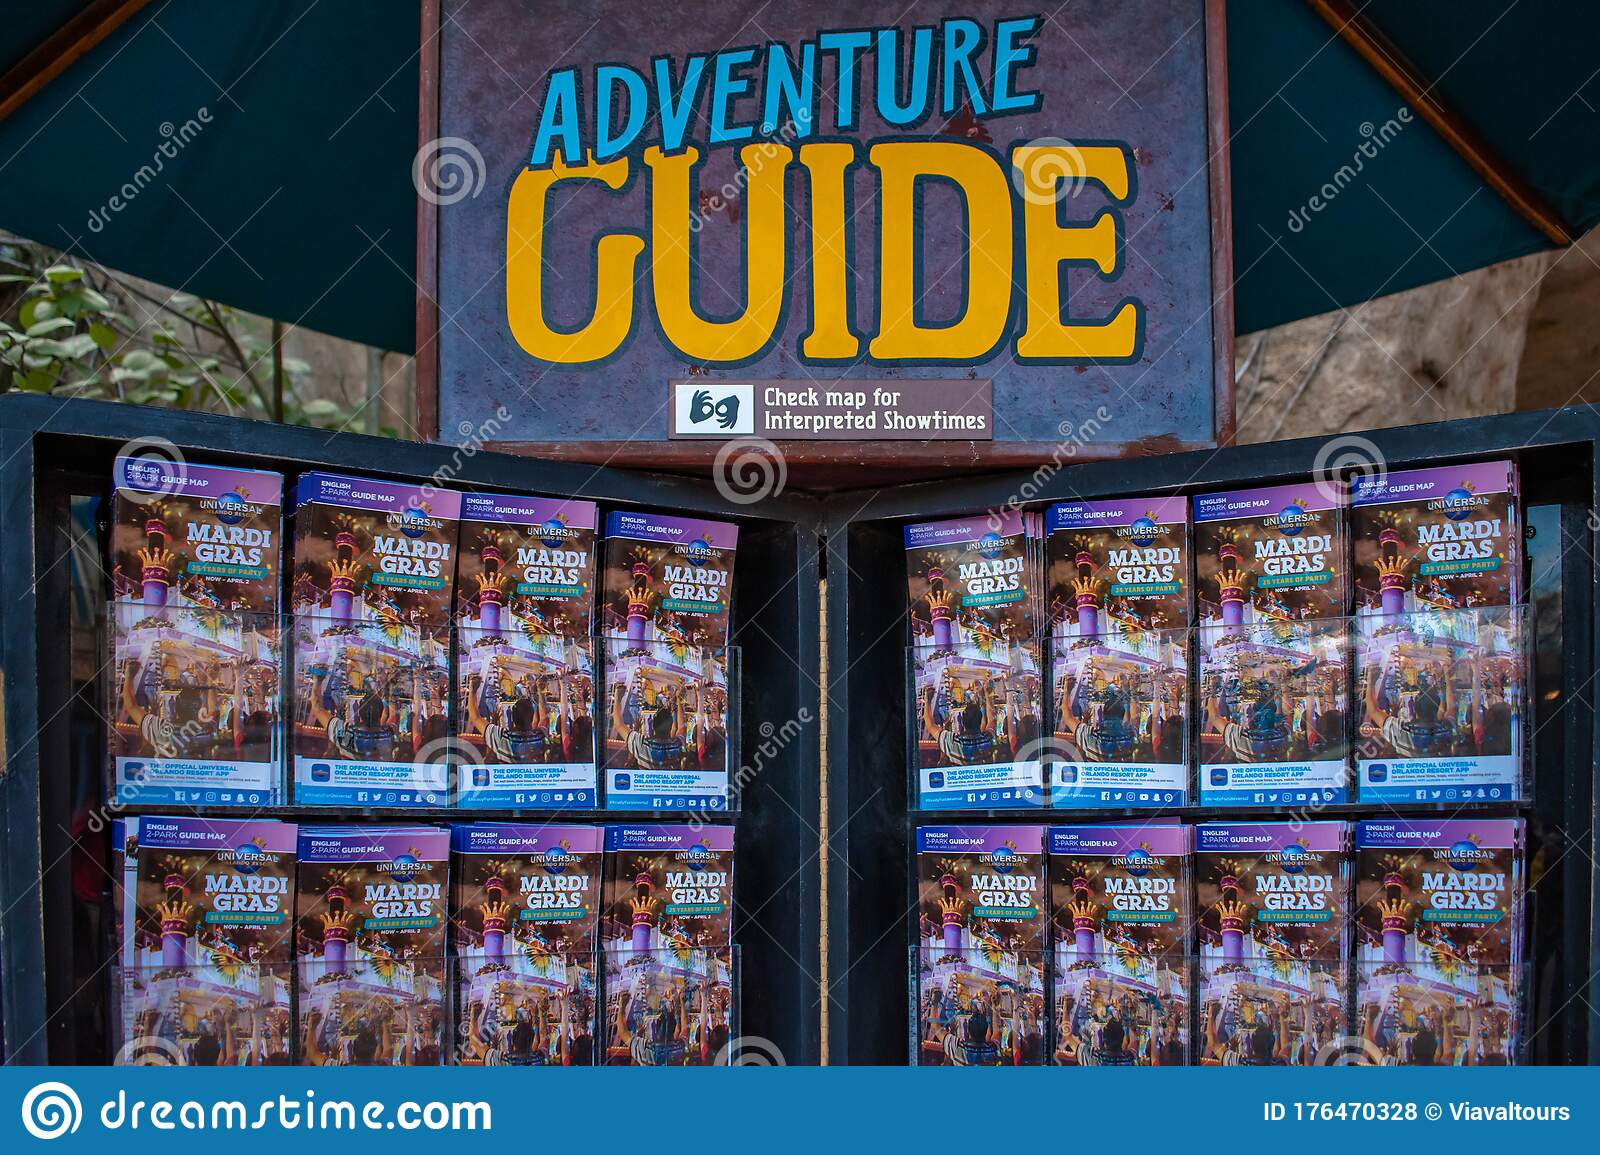 Adventure Guide With Park Maps At Universals Islands Of Adventure 50 Editorial Stock Photo Image Of Attractions Amazing 176470328